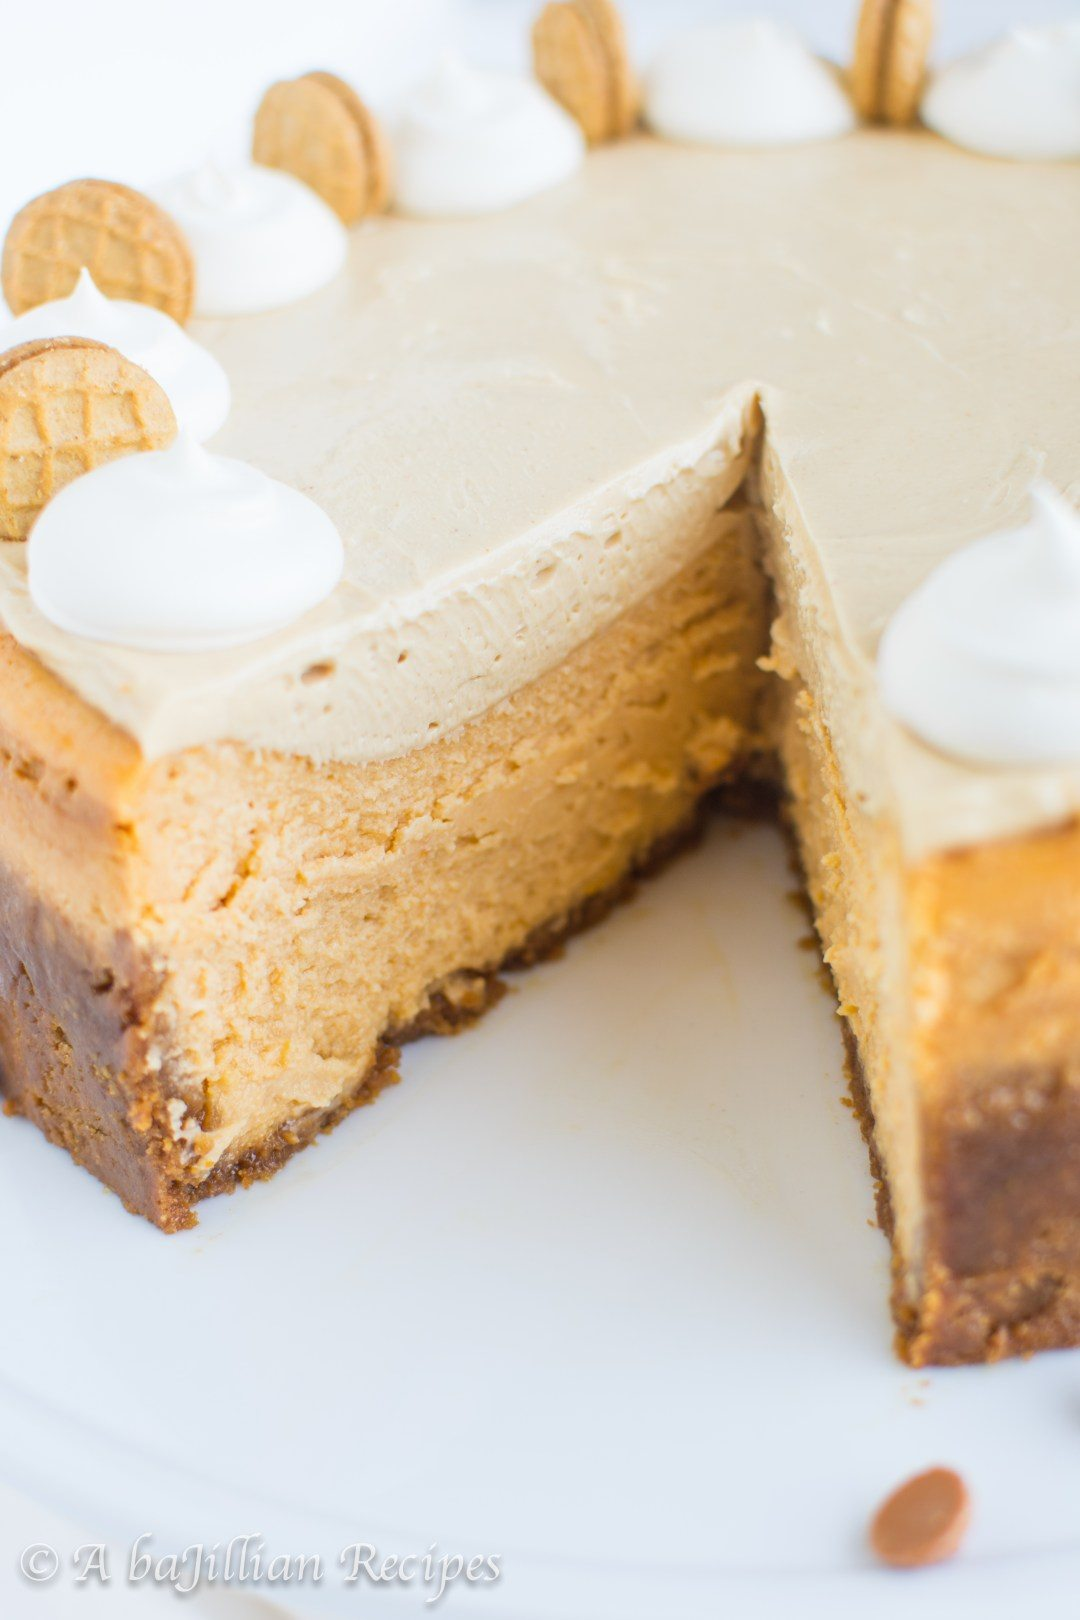 Butterscotch and Peanut Butter Cheesecake